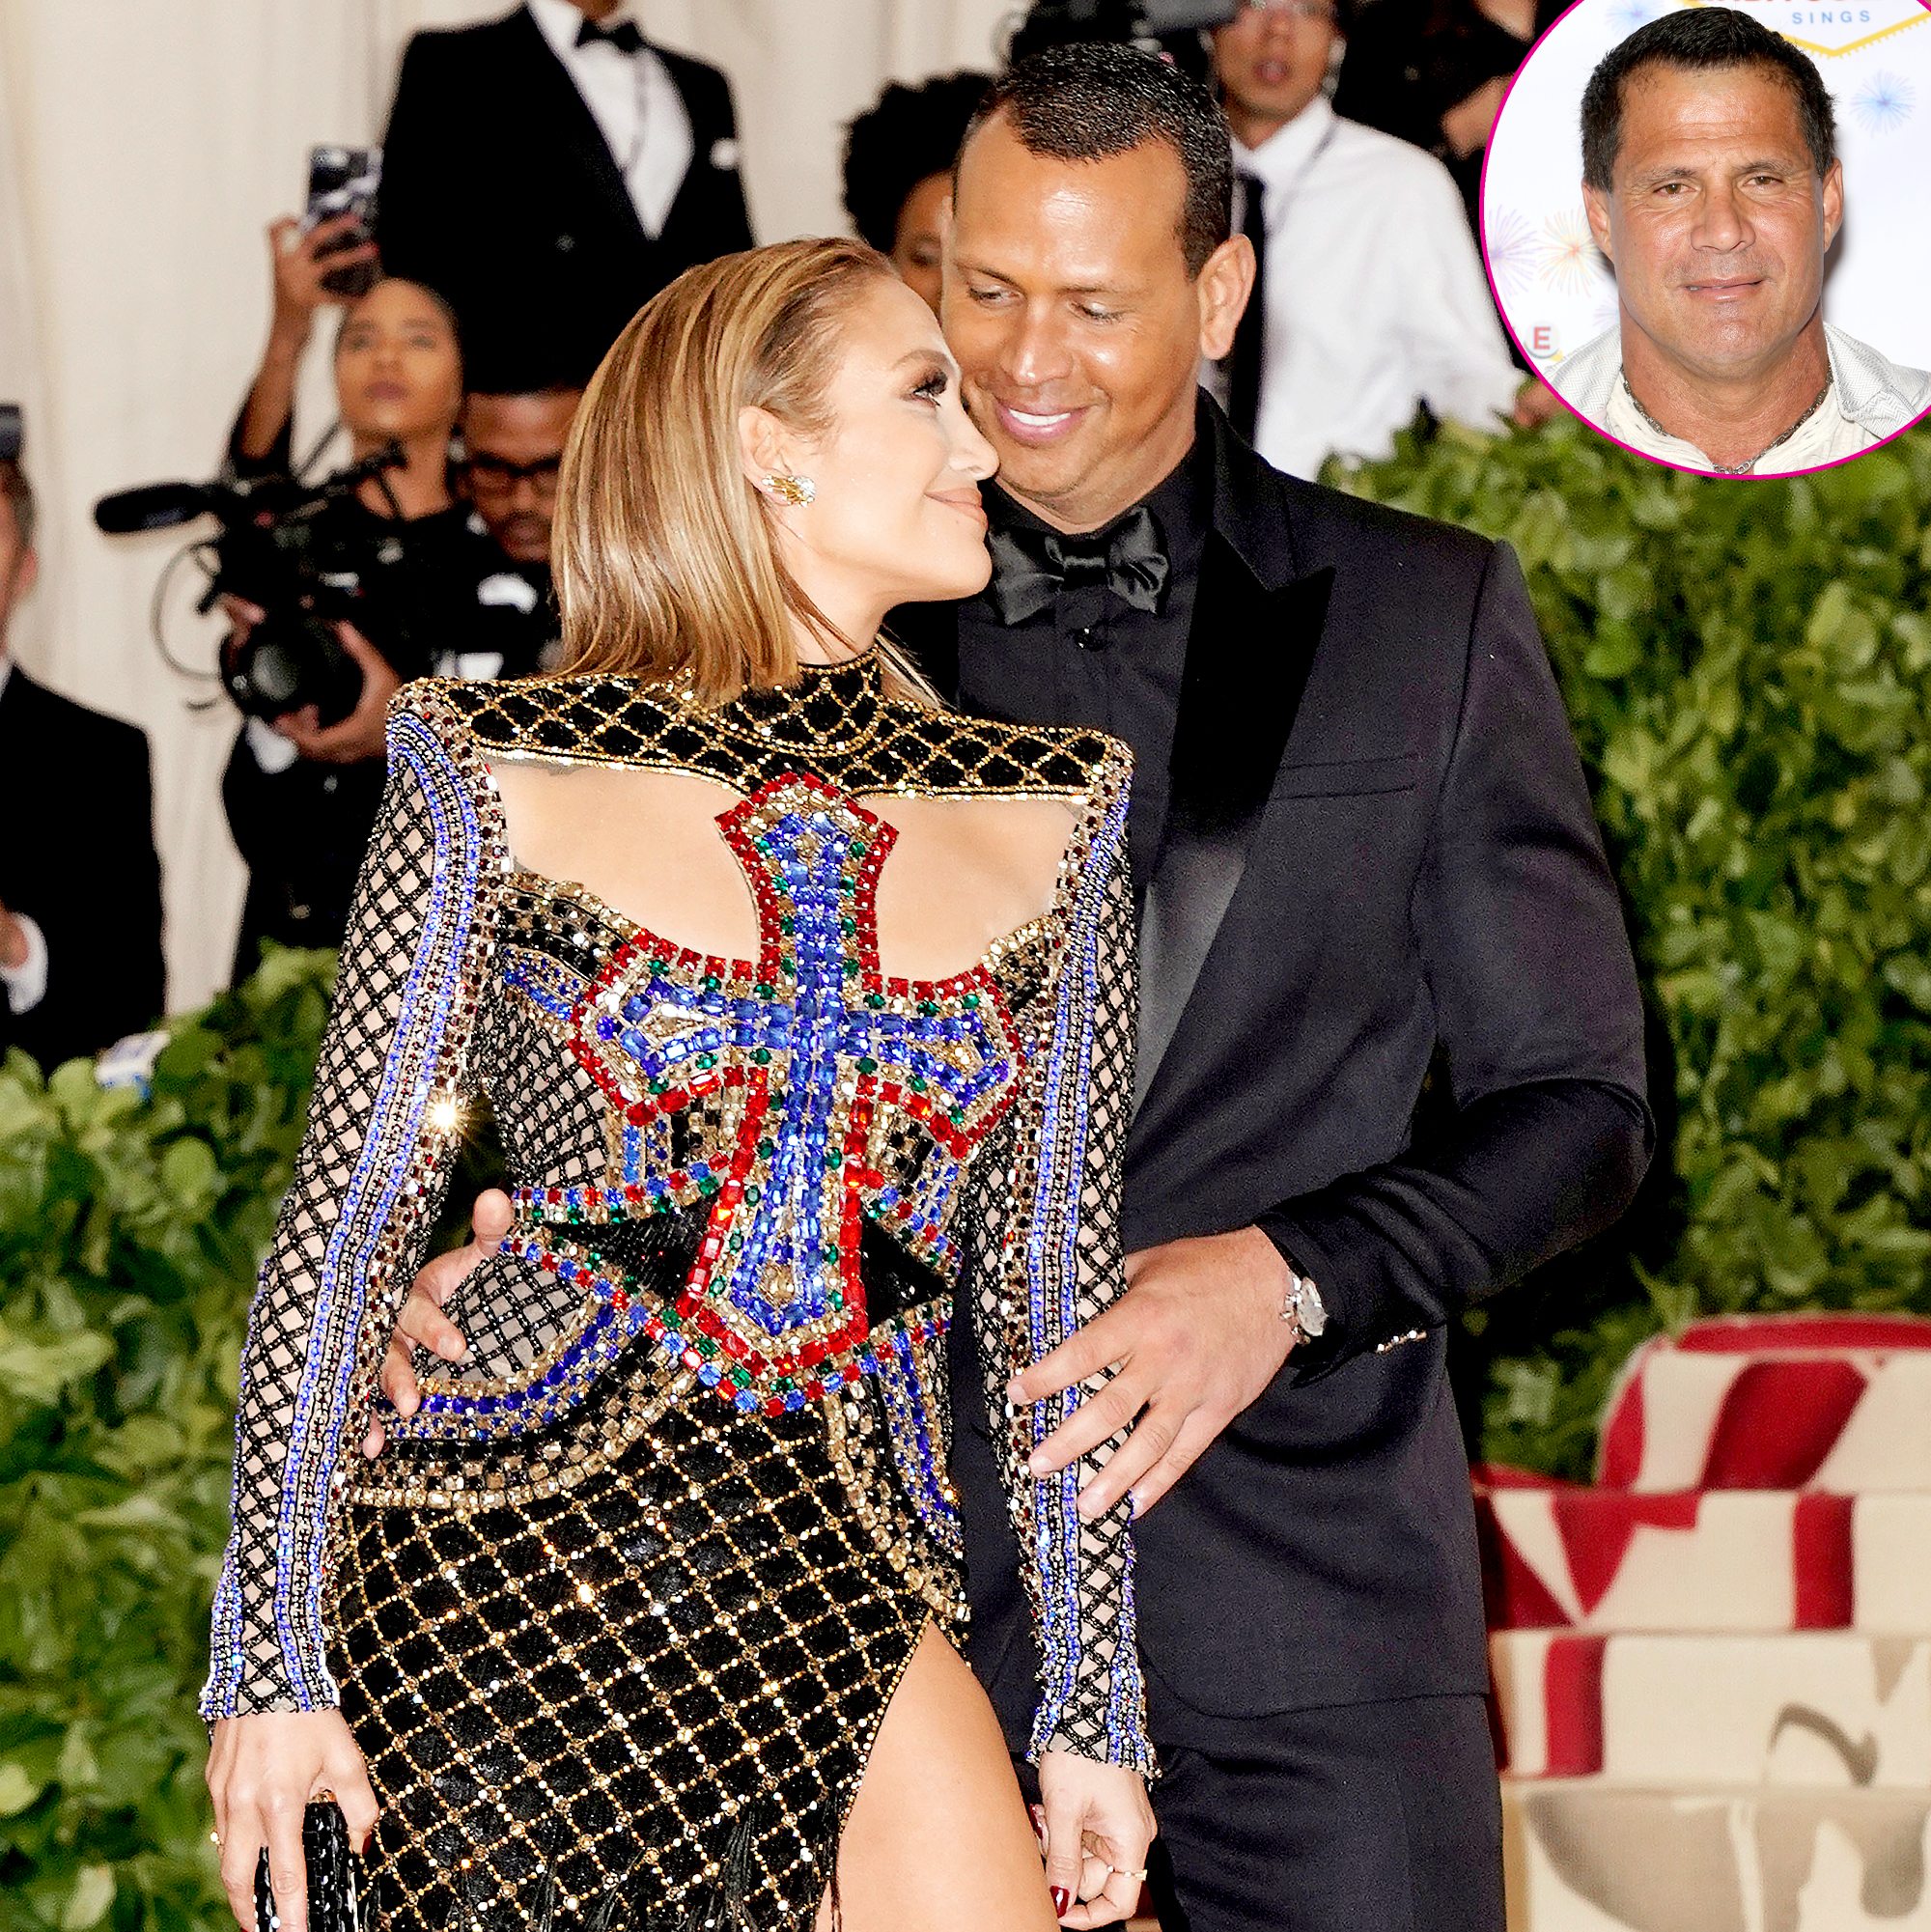 Jennifer-Lopez-'Trusts'-Alex-Rodriguez-and-'Doesn't-Hear-the-Noise'-After-Jose-Canseco-Cheating-Tweets